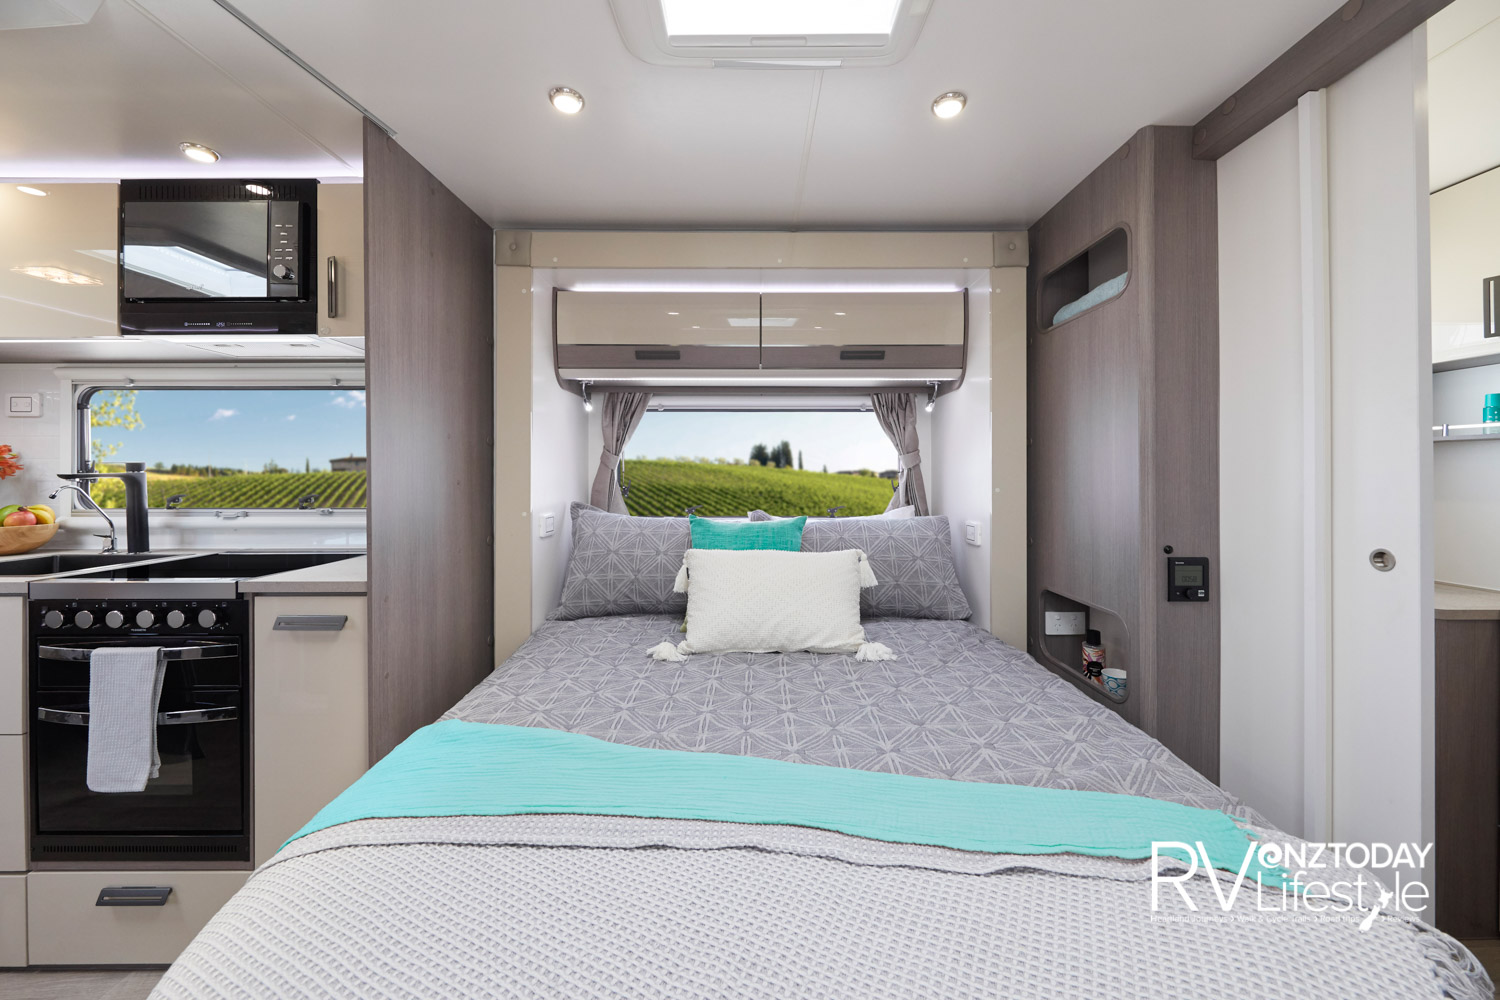 The bed is in the slide-out area, overhead storage and LED lights with a big window, light switches by the bedside, book and cup area, power points alongside. Rear bathroom sliding door